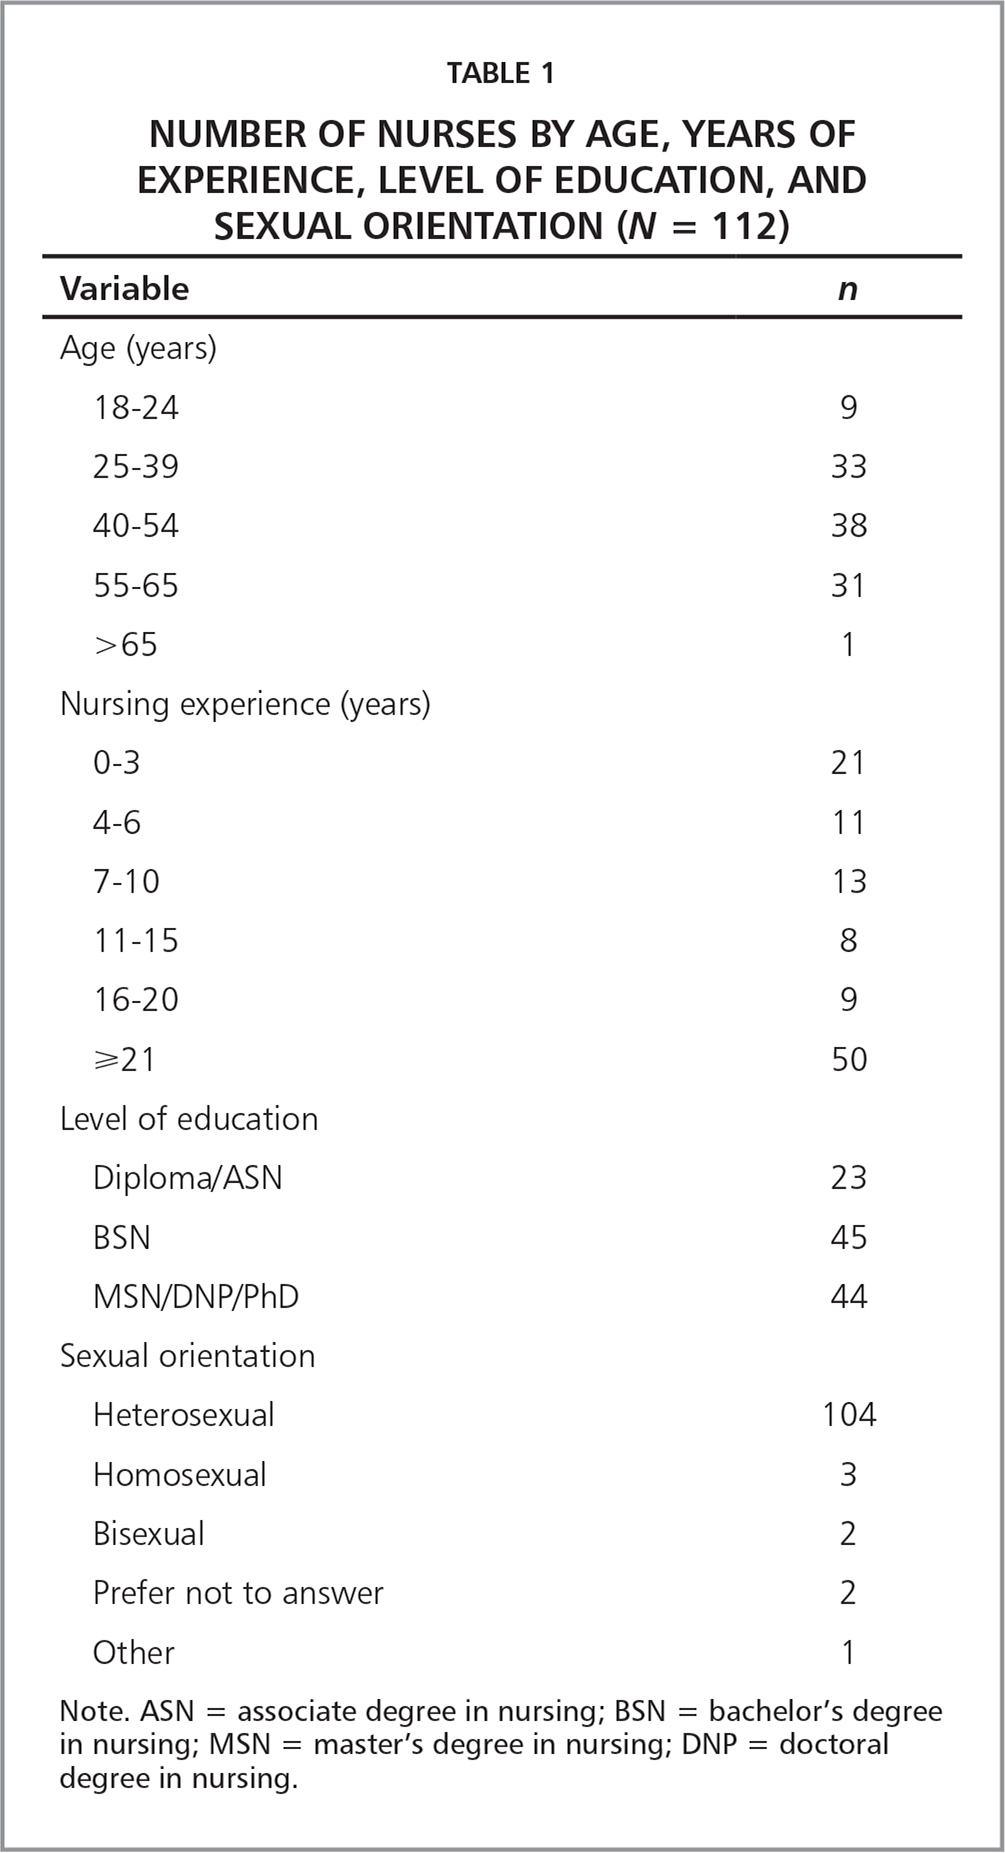 Number of Nurses by Age, Years of Experience, Level of Education, and Sexual Orientation (N = 112)